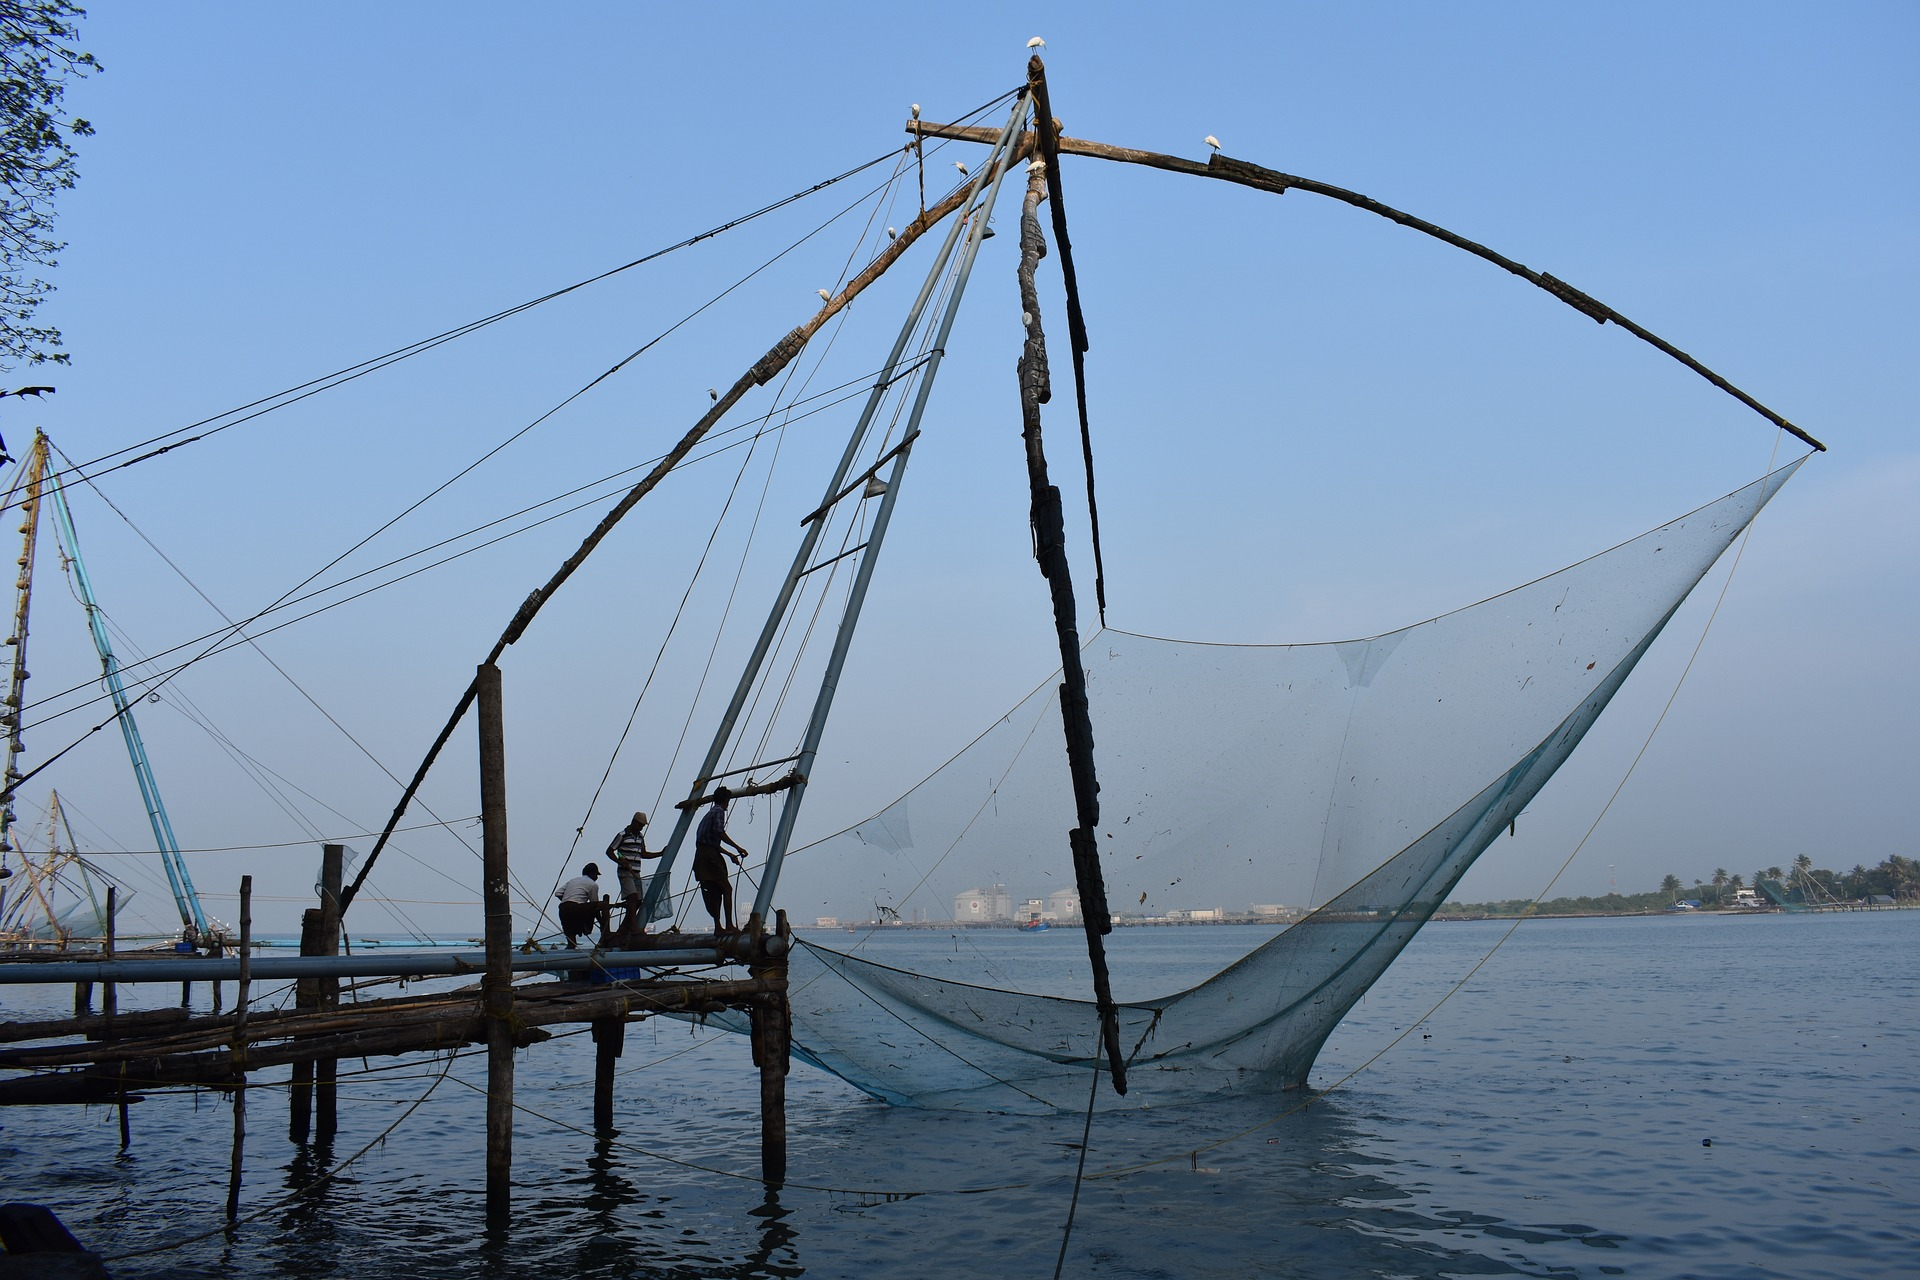 Southern India Odyssey - Kochi Chinese fishing nets, India